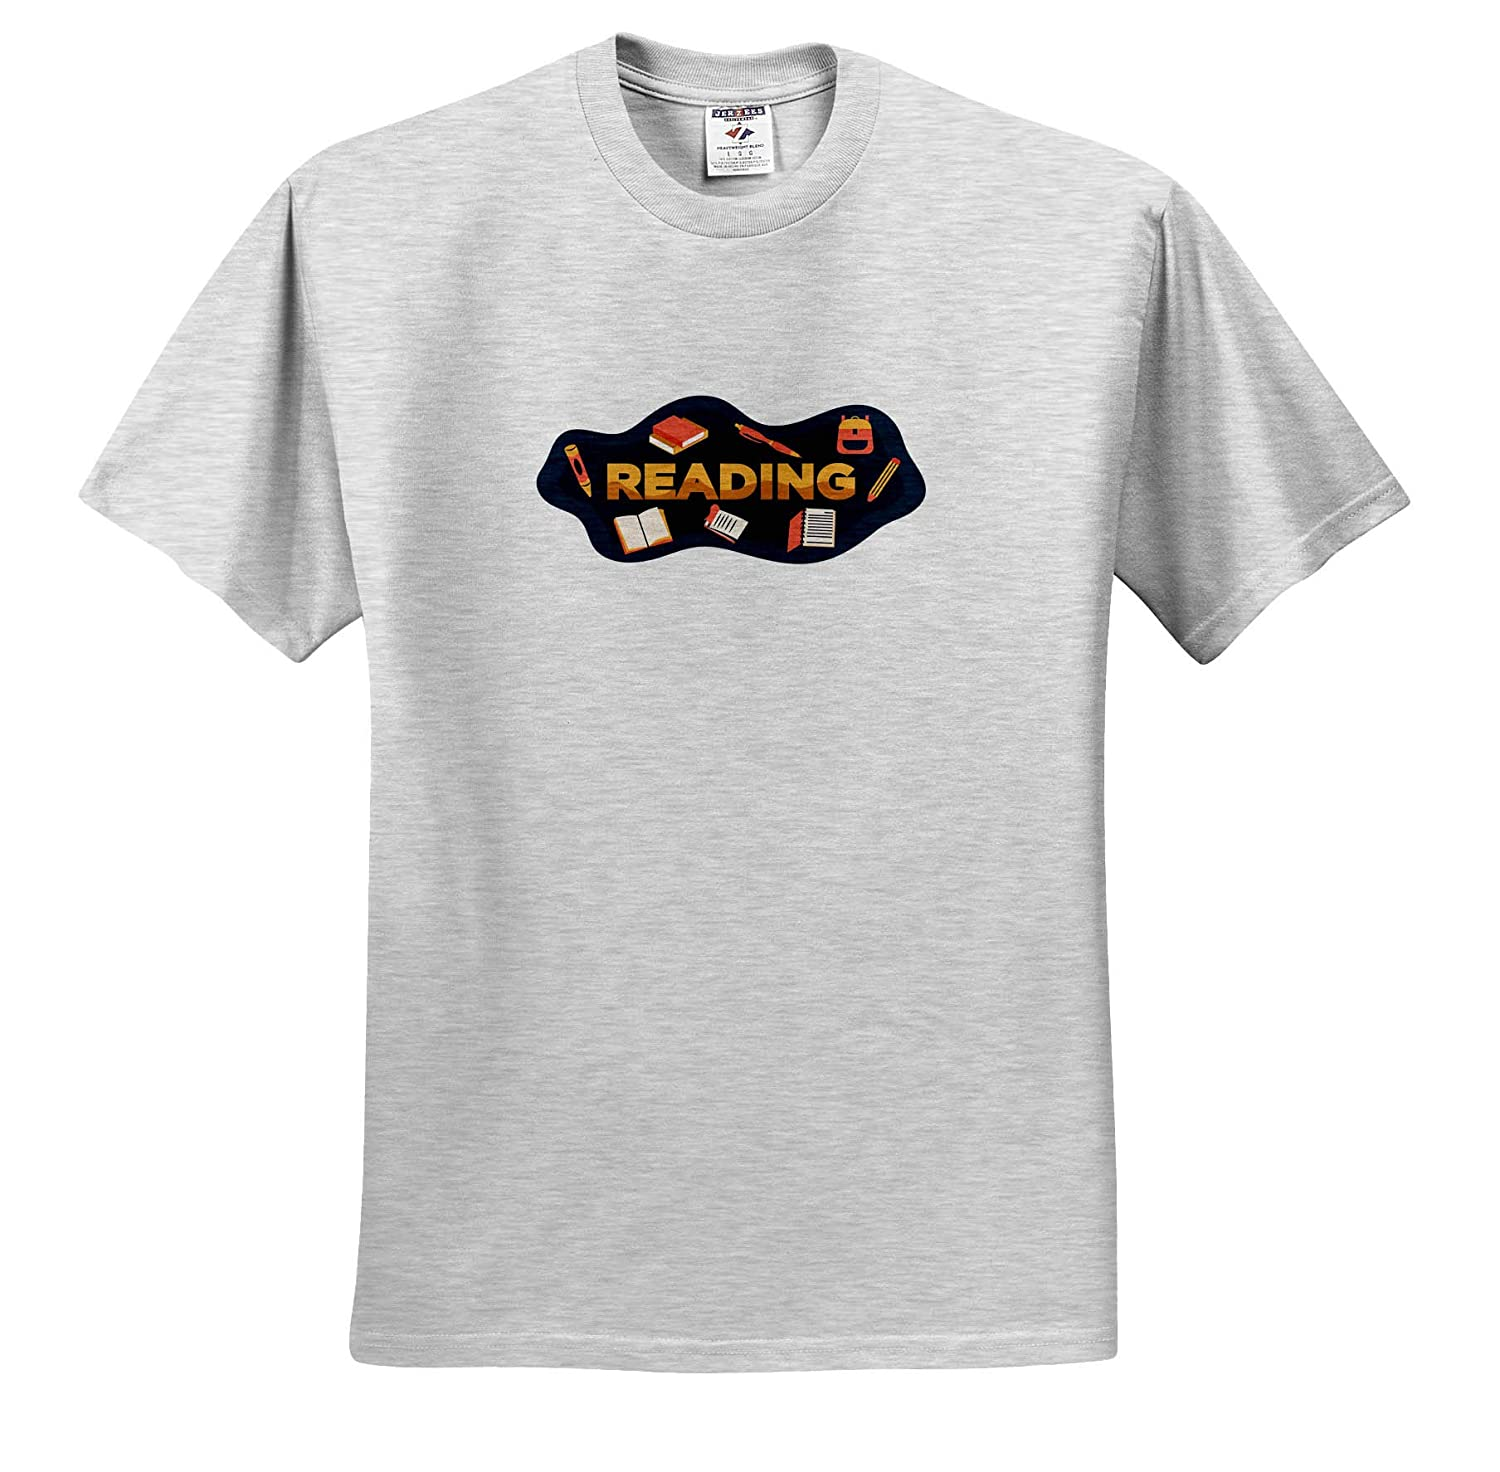 3dRose Sven Herkenrath Quotes Reading Saying Quotes for Book Lovers for School ts/_320104 Adult T-Shirt XL